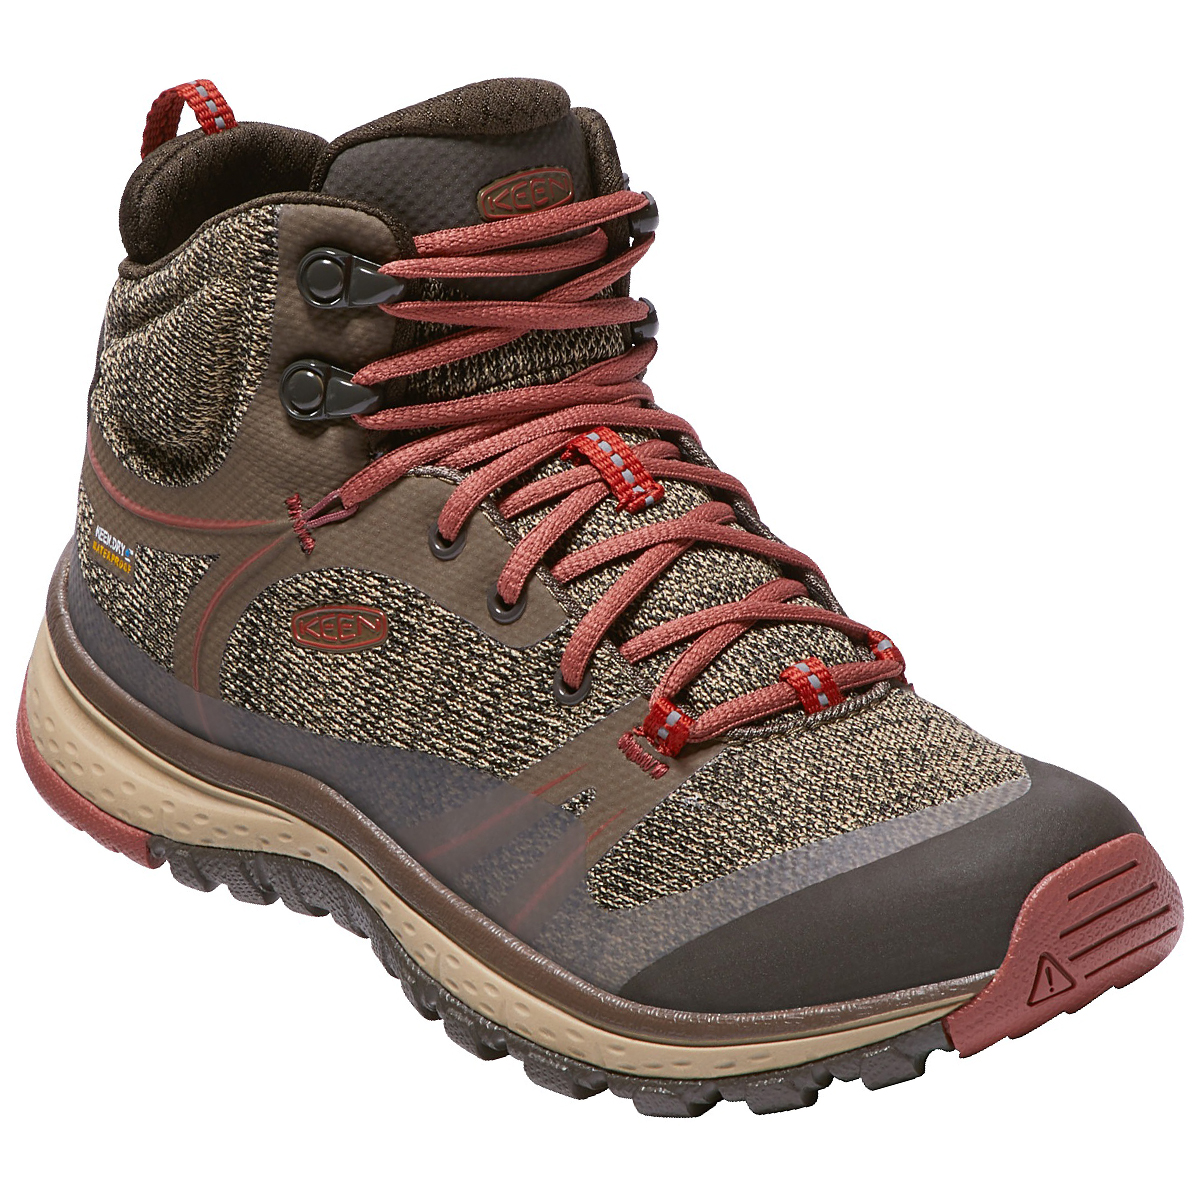 Keen Women's Terradora Waterproof Mid Hiking Boots - Brown, 11